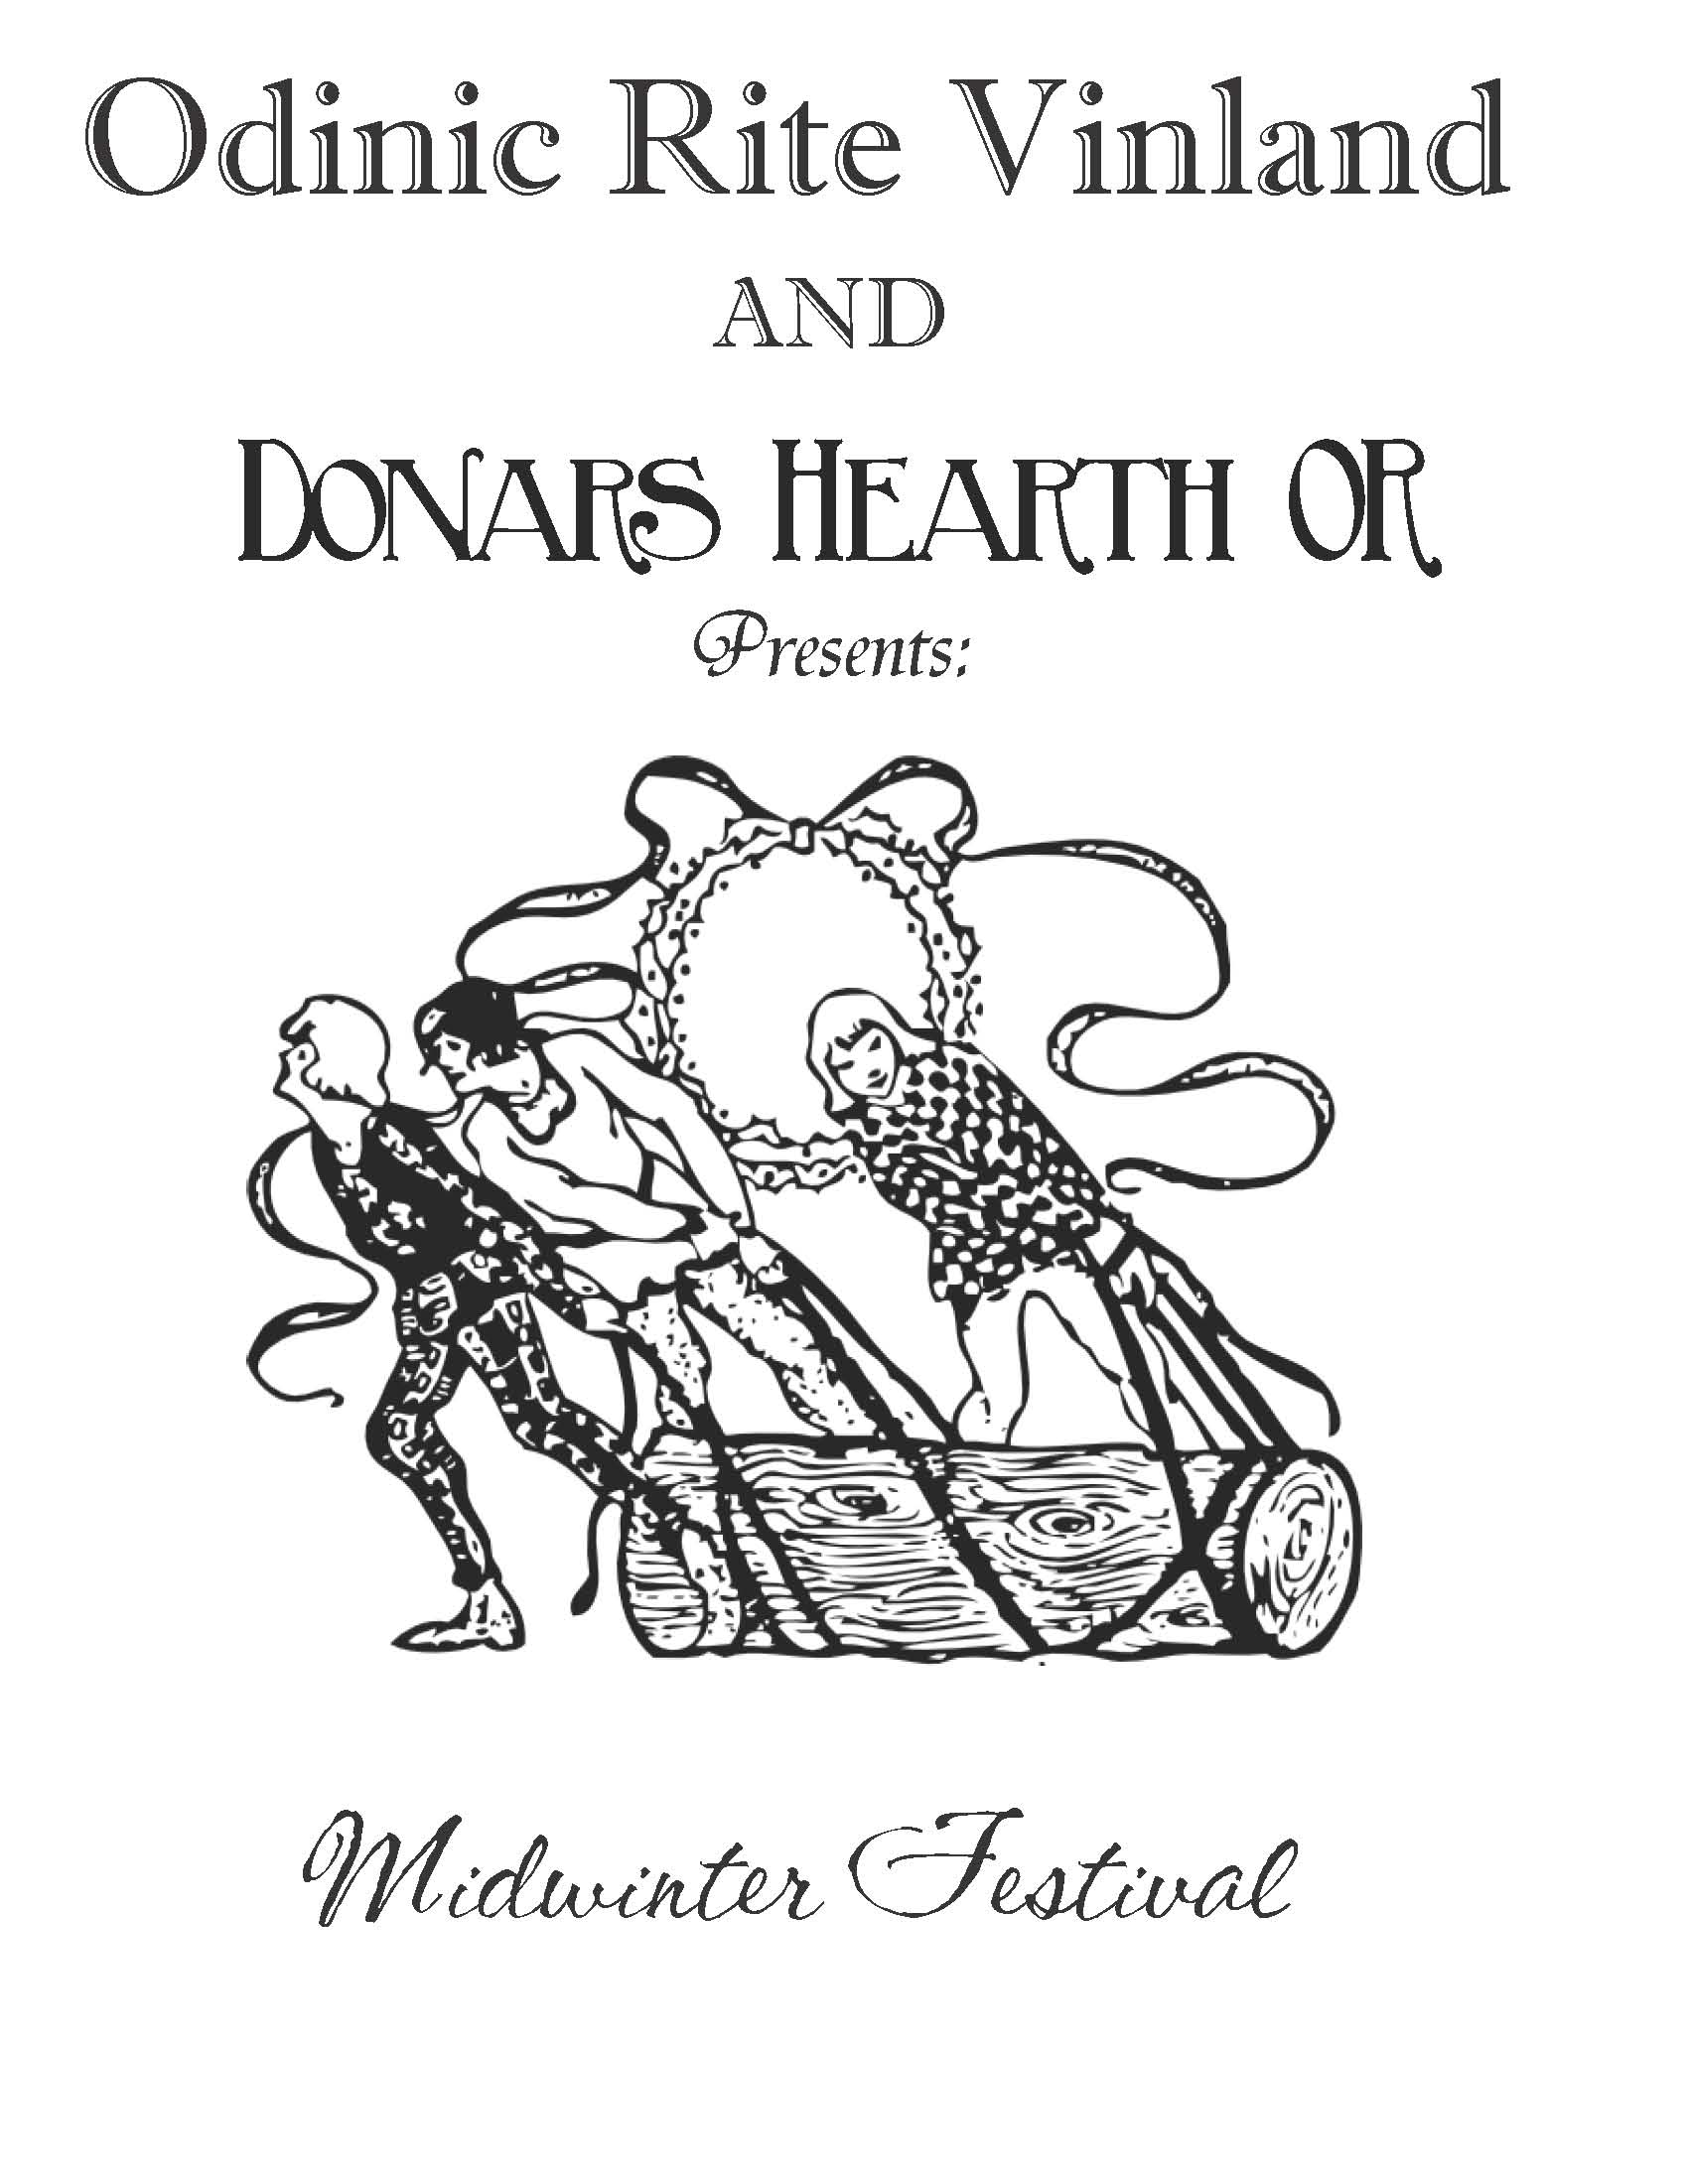 Donar's Hearth OR Yule Booklets